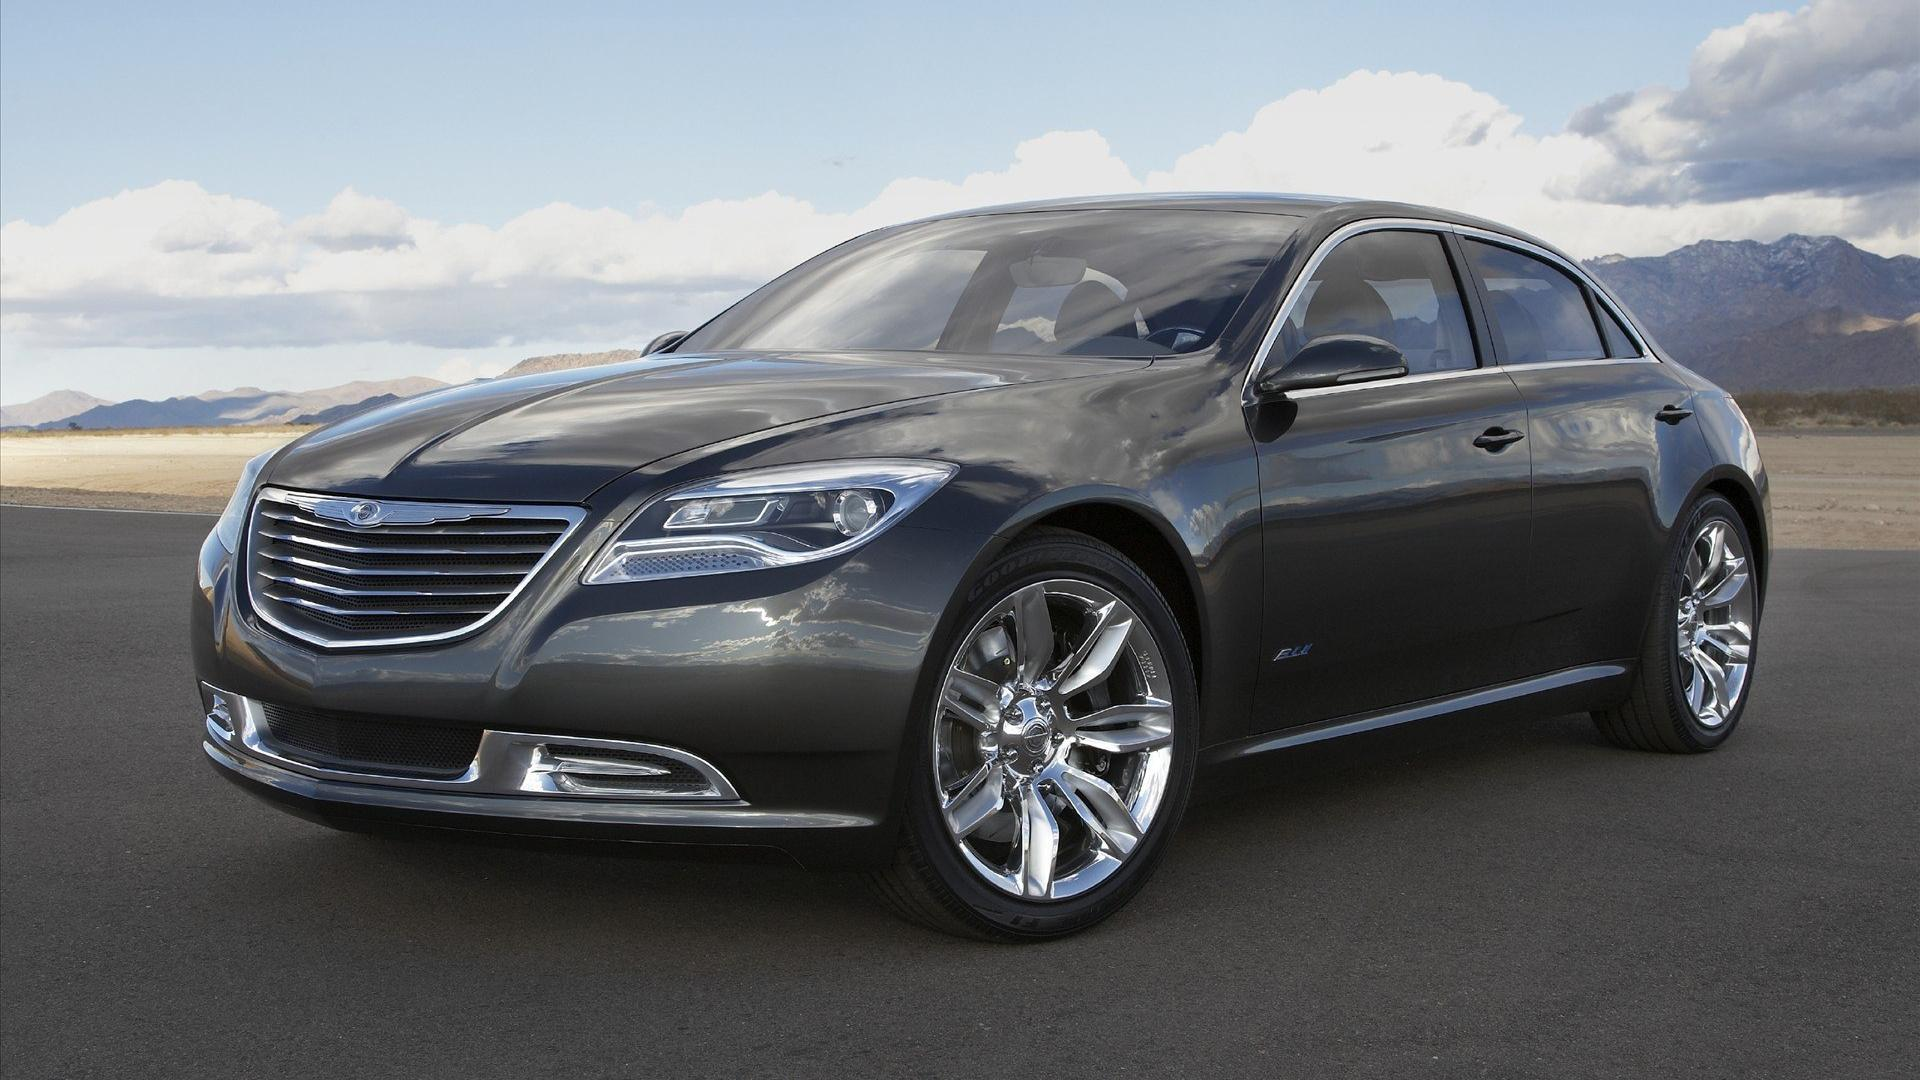 chrysler 200 pictures #3